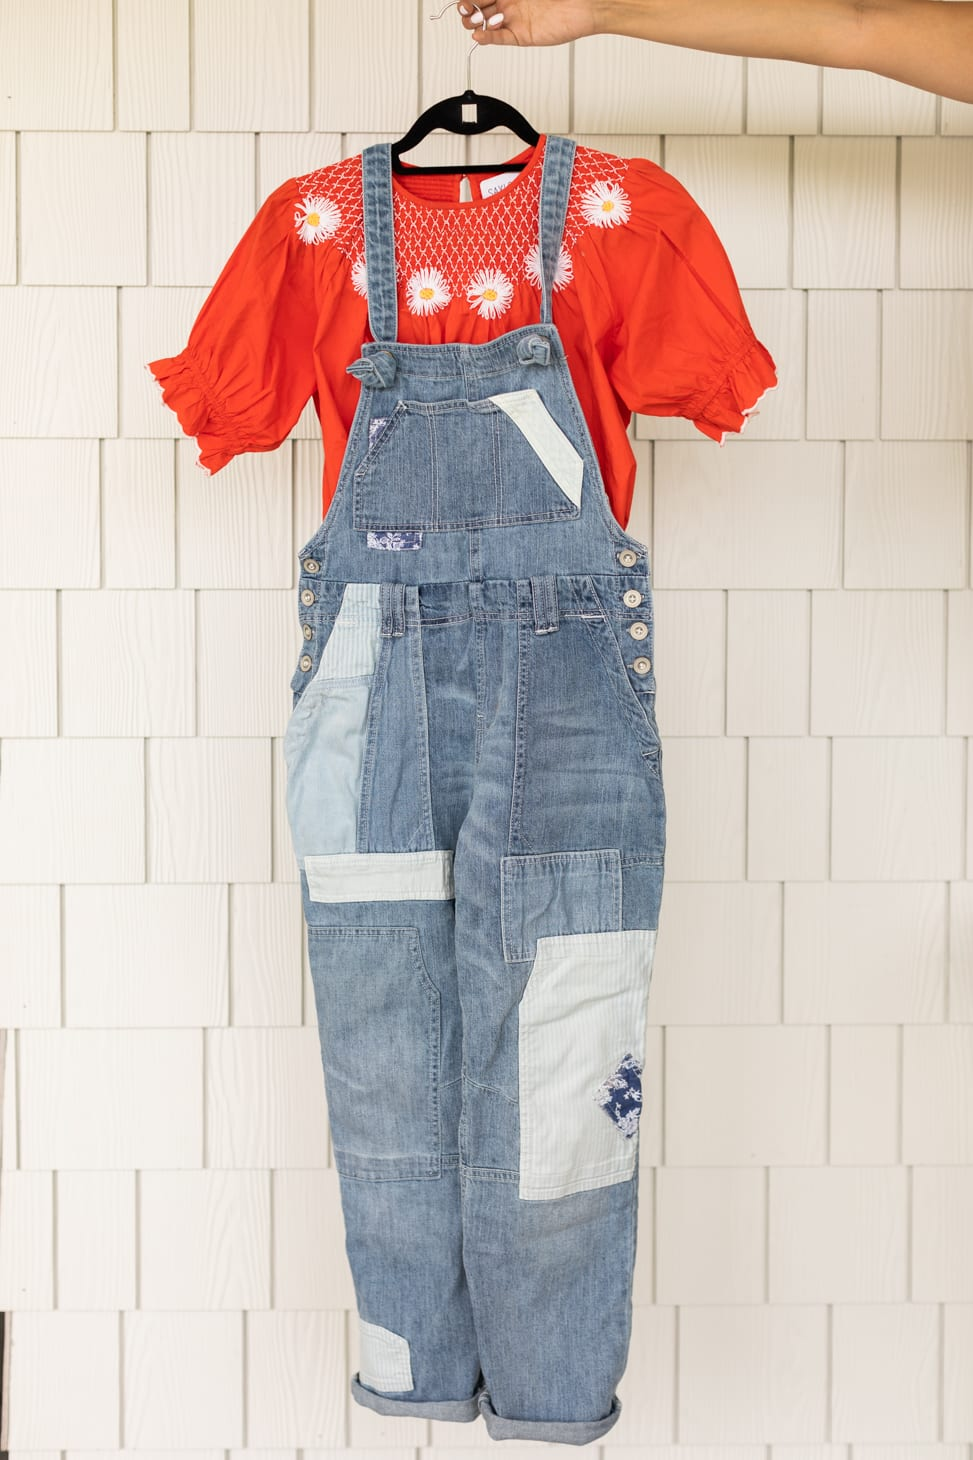 Jillian Harris' Favourite patchwork Overalls shown with a red short-sleeved prairie style shirt, one of her farm-inspired outfits.